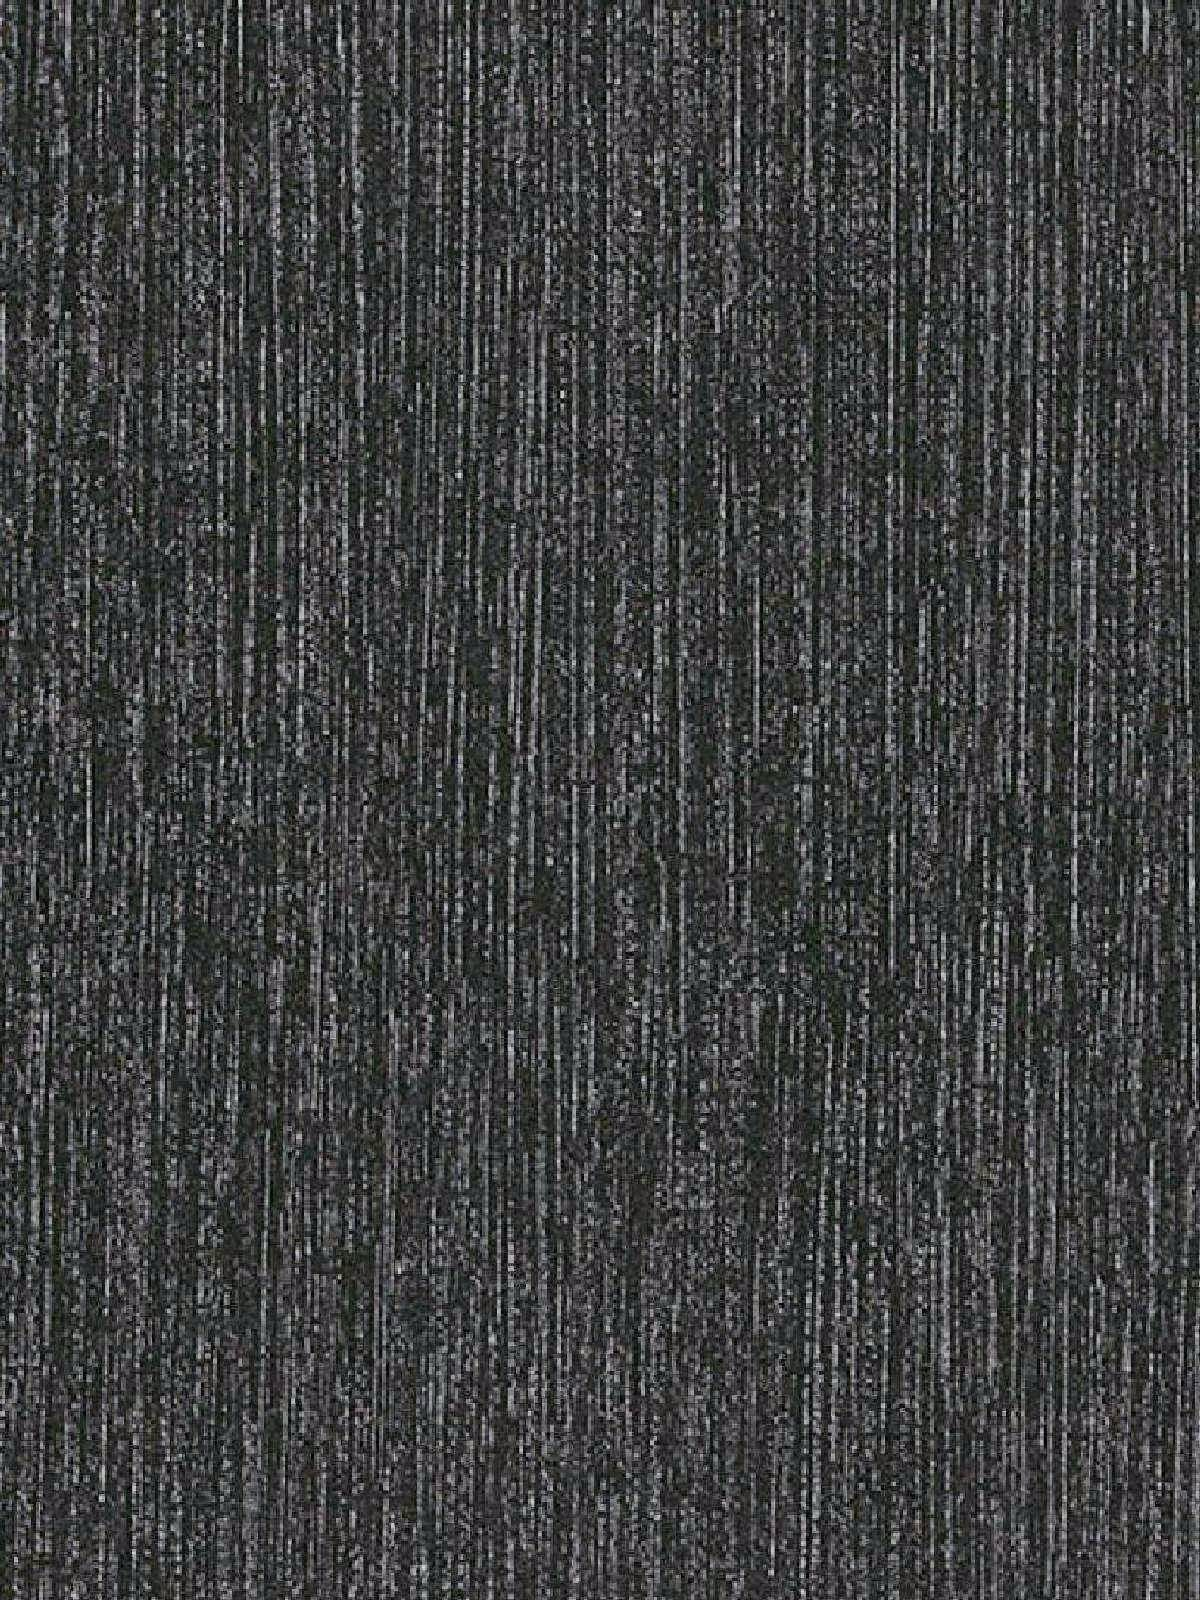 wallpaper black and silver wallpaper black and silver wallpaper black 1200x1600